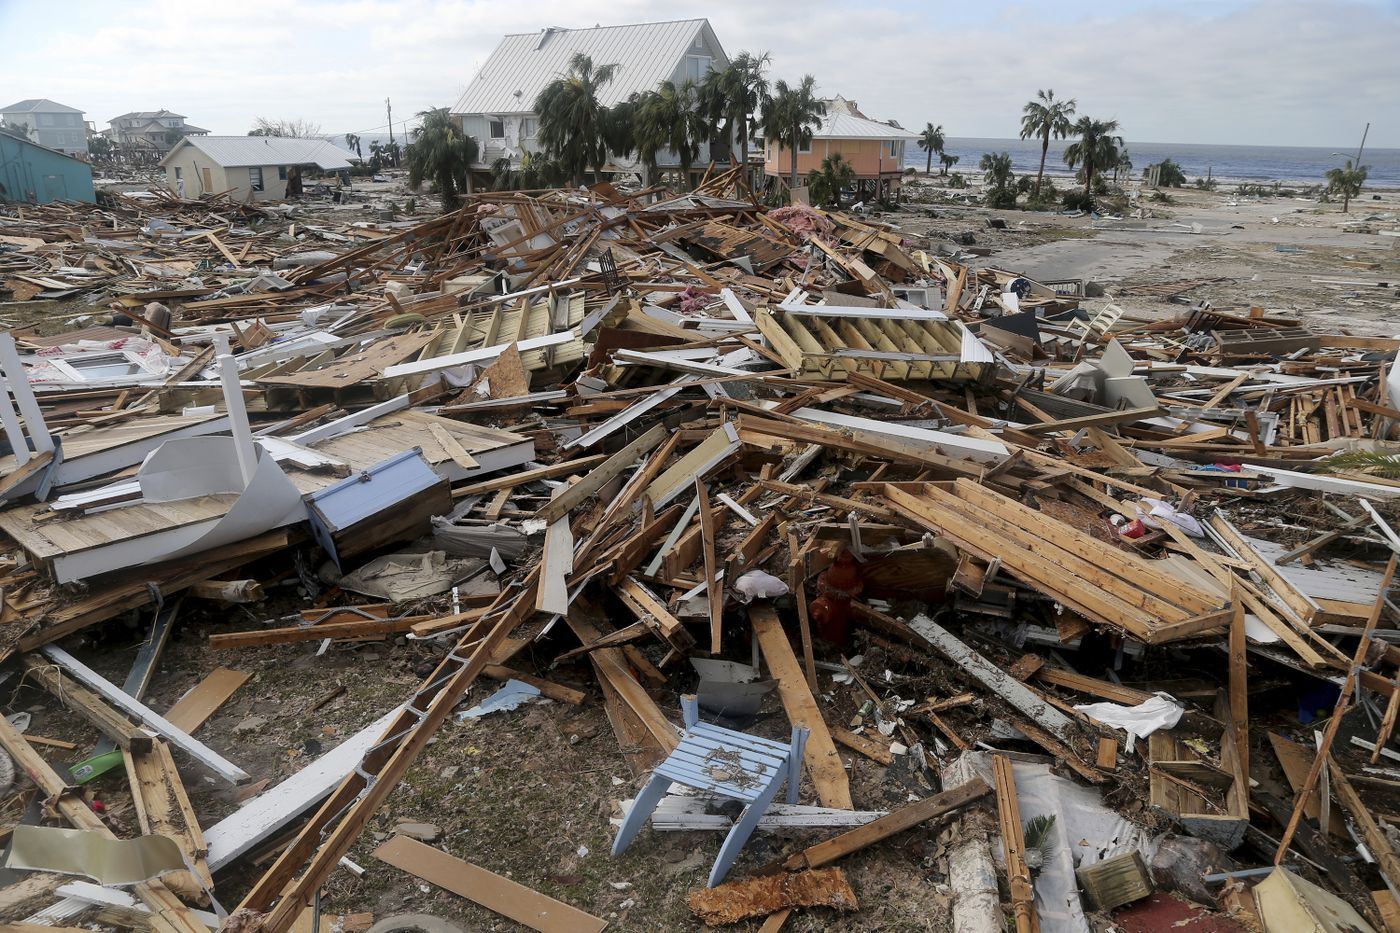 The Coastal Township Of Mexico Beach Fla Lays Devastated On Thursday Oct 11 2018 After Hurricane Mic Mexico Beach Florida Mexico Beach Florida